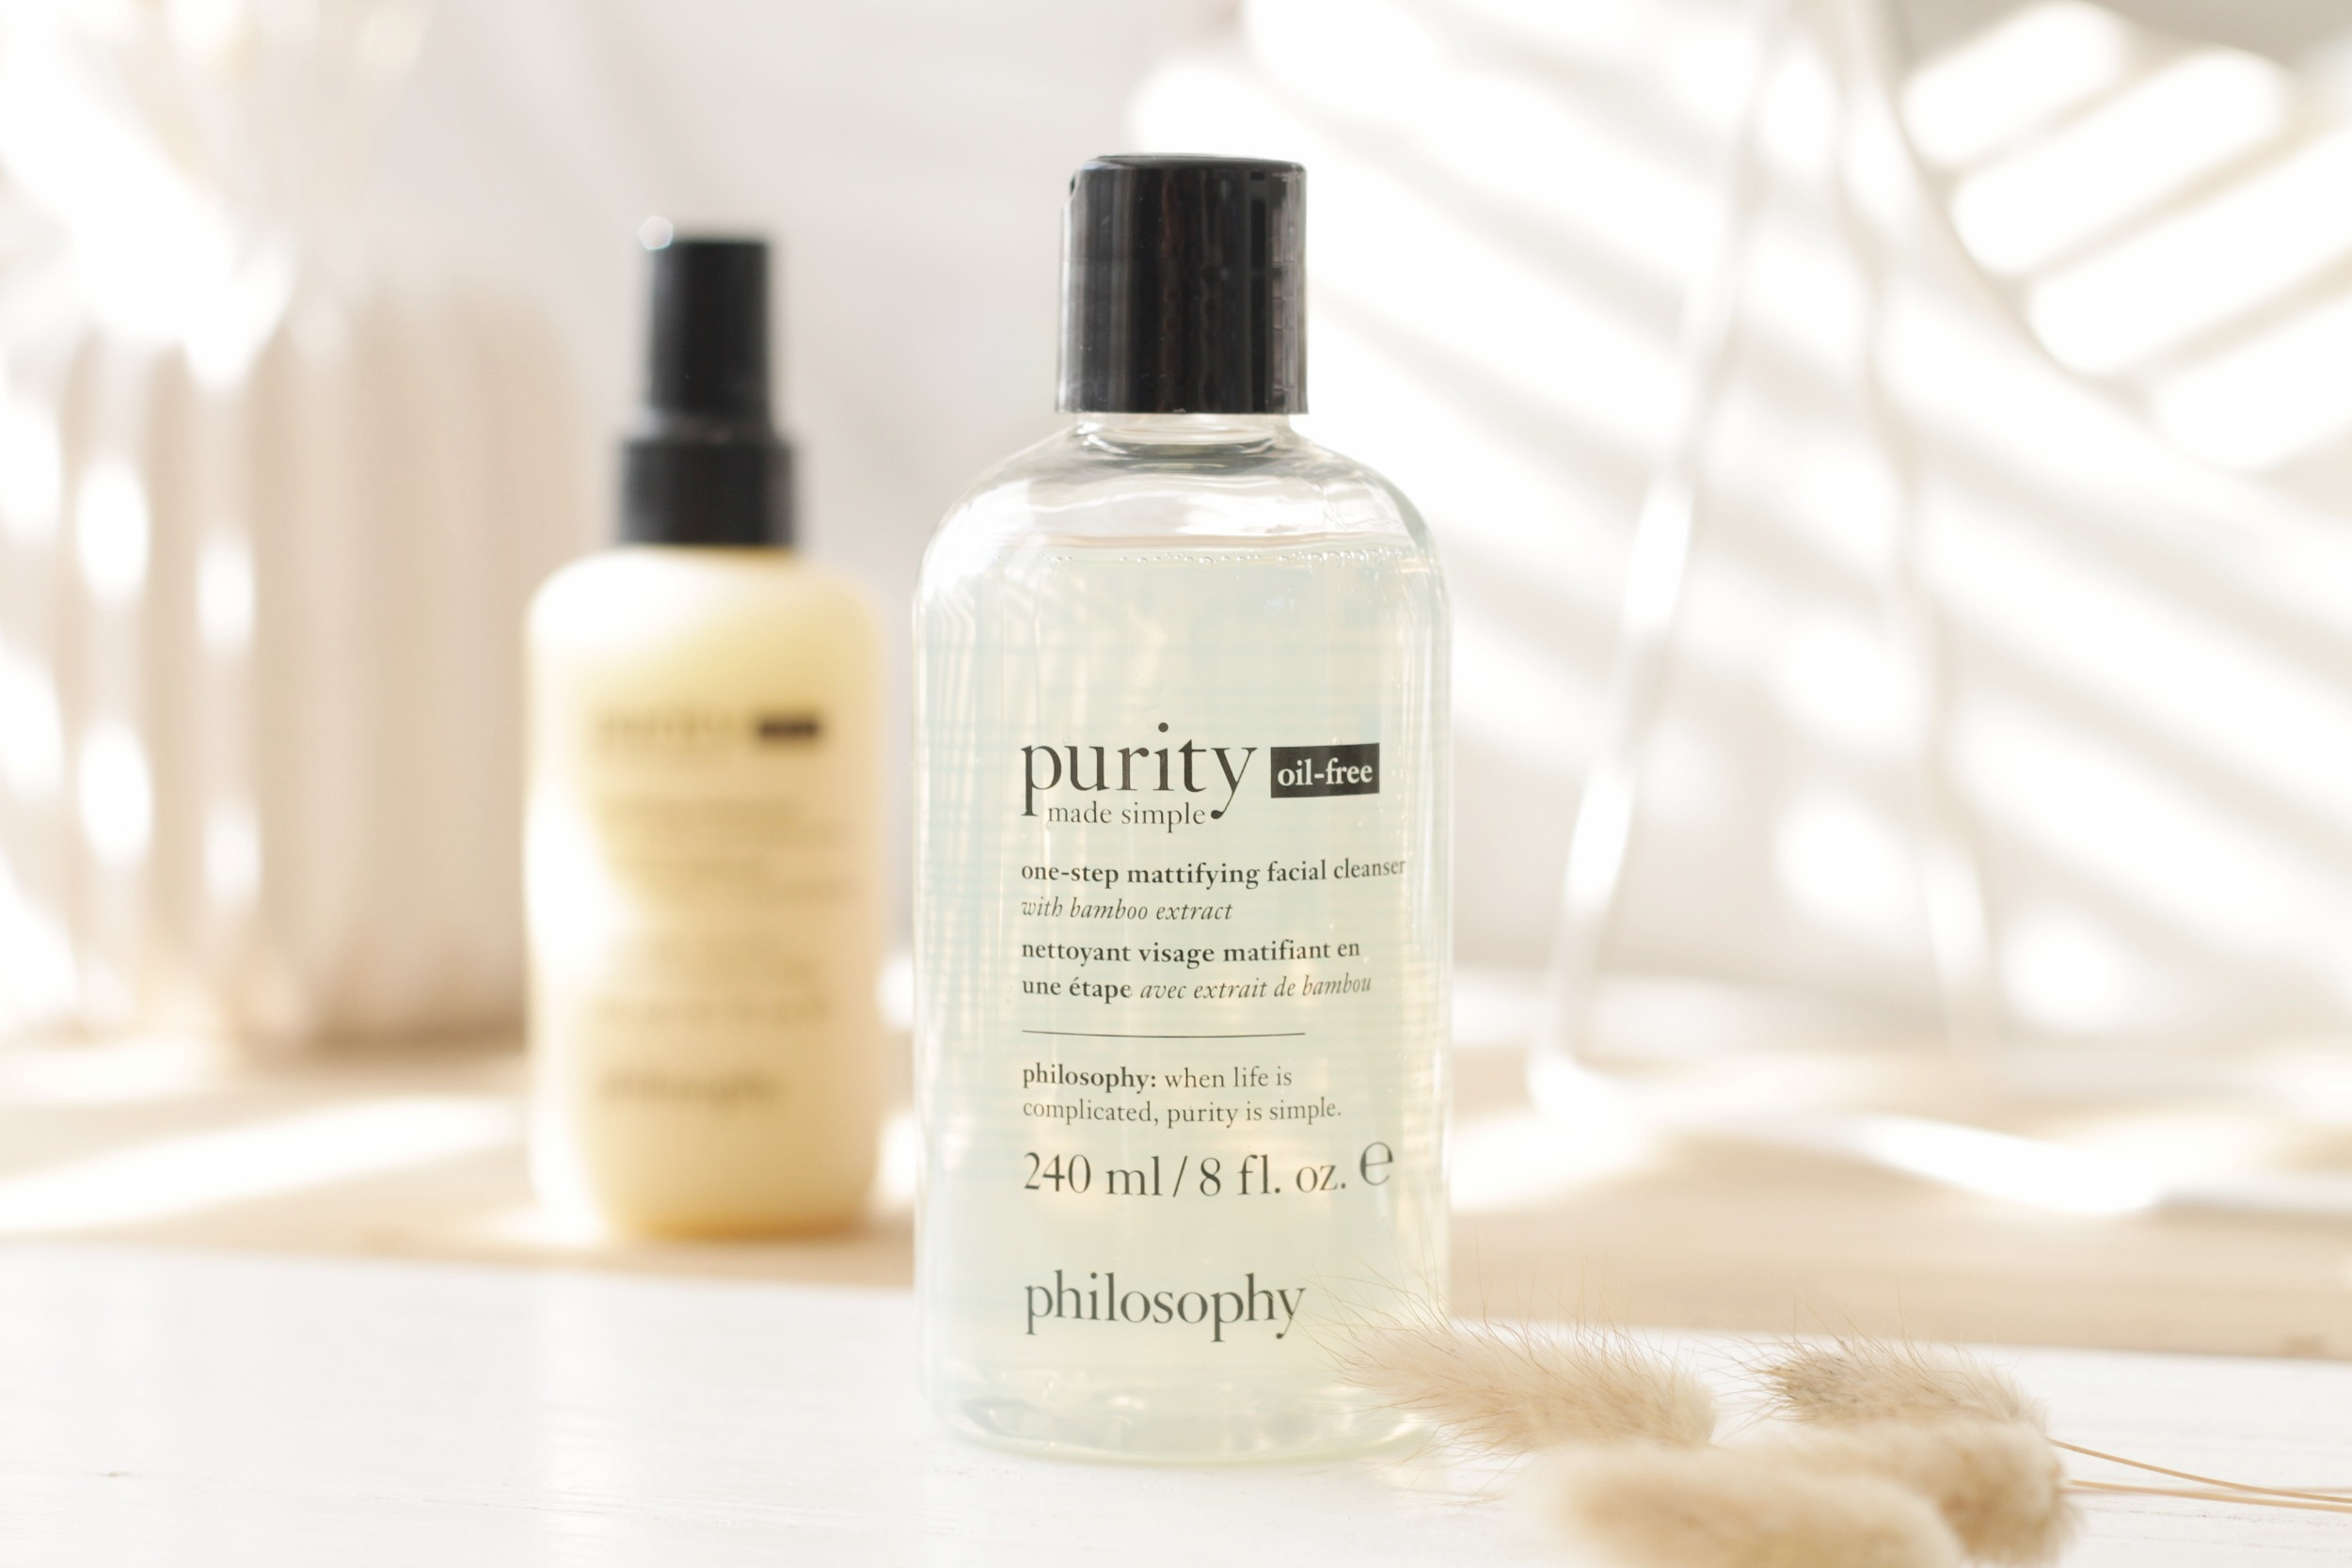 Philosophy Purity One step cleanser